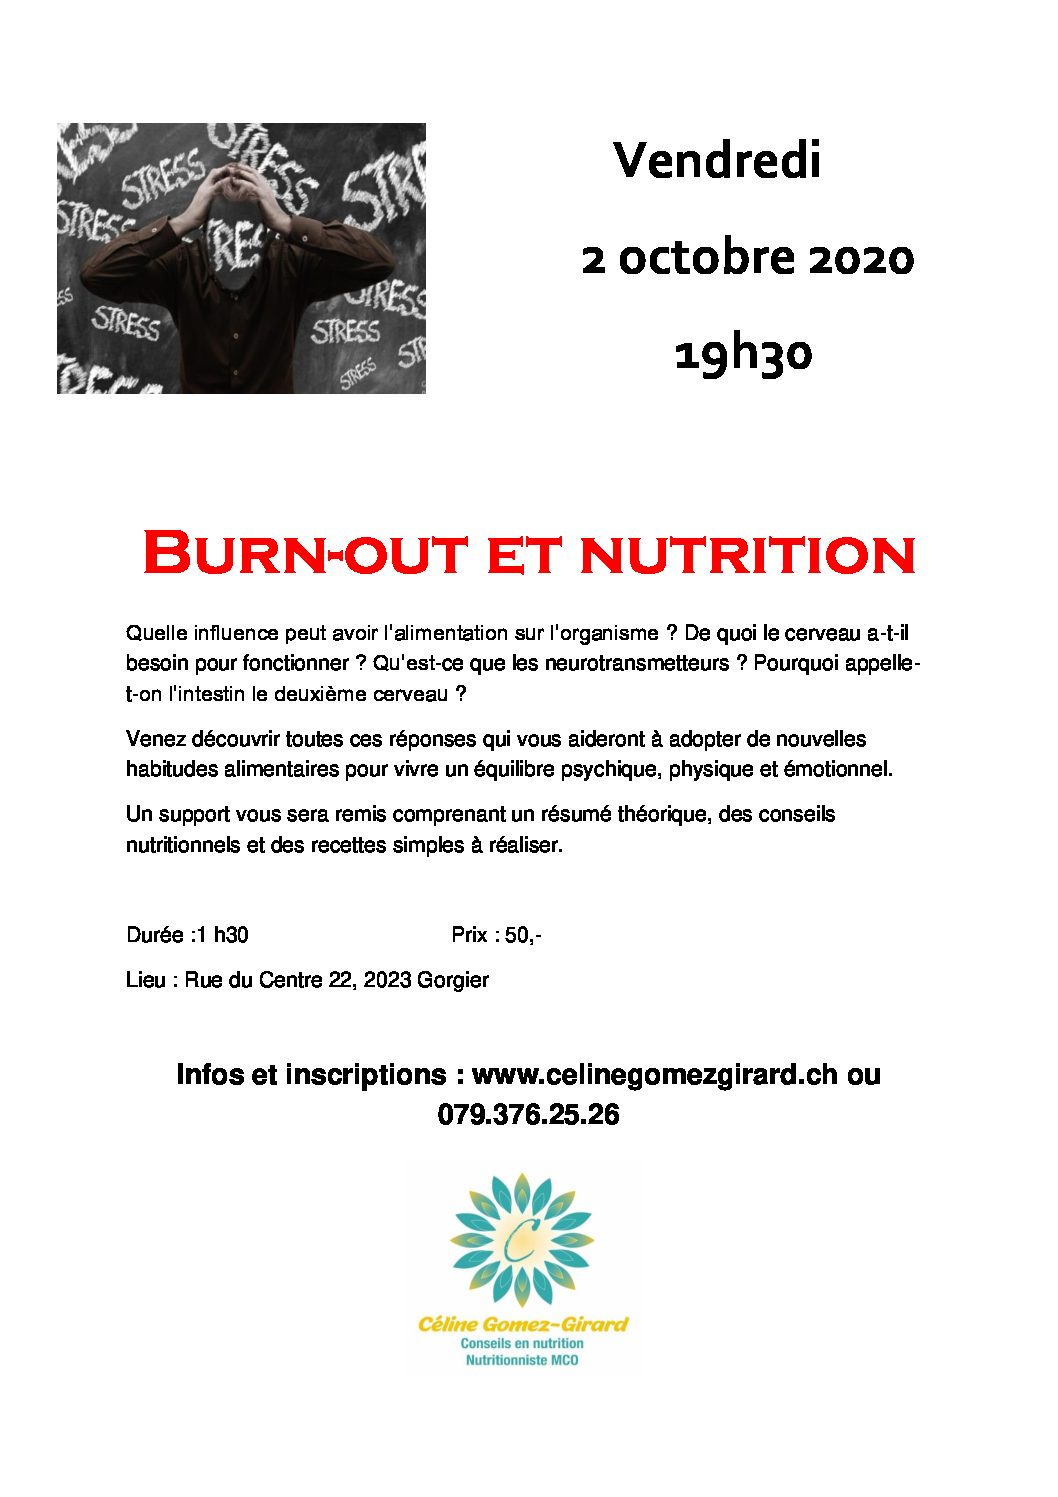 Atelier « Burn-out et nutrition » 2.10.2020